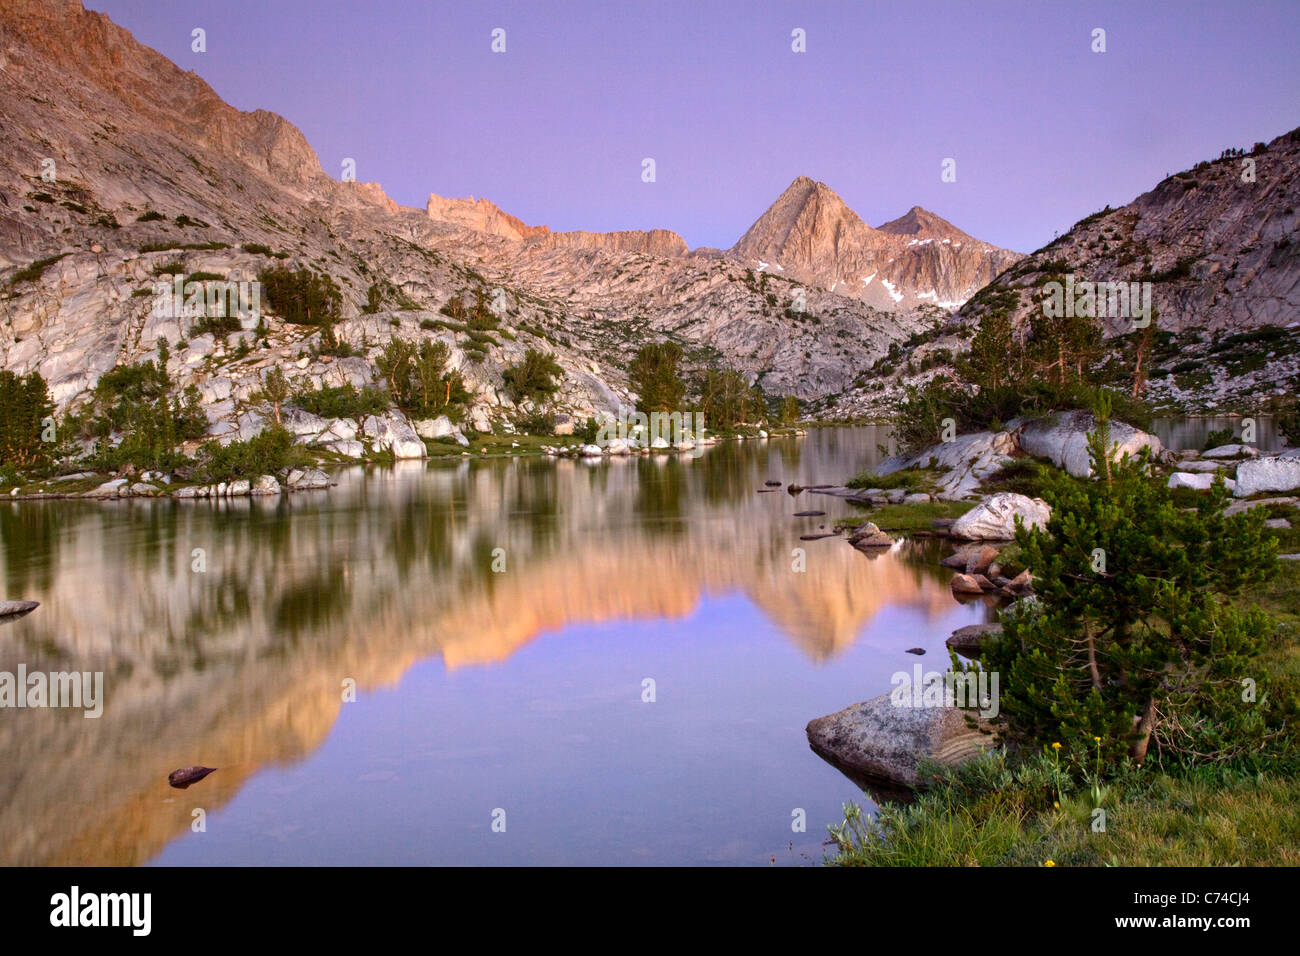 Reflection of a mountain range in a lake in California at sunset. - Stock Image